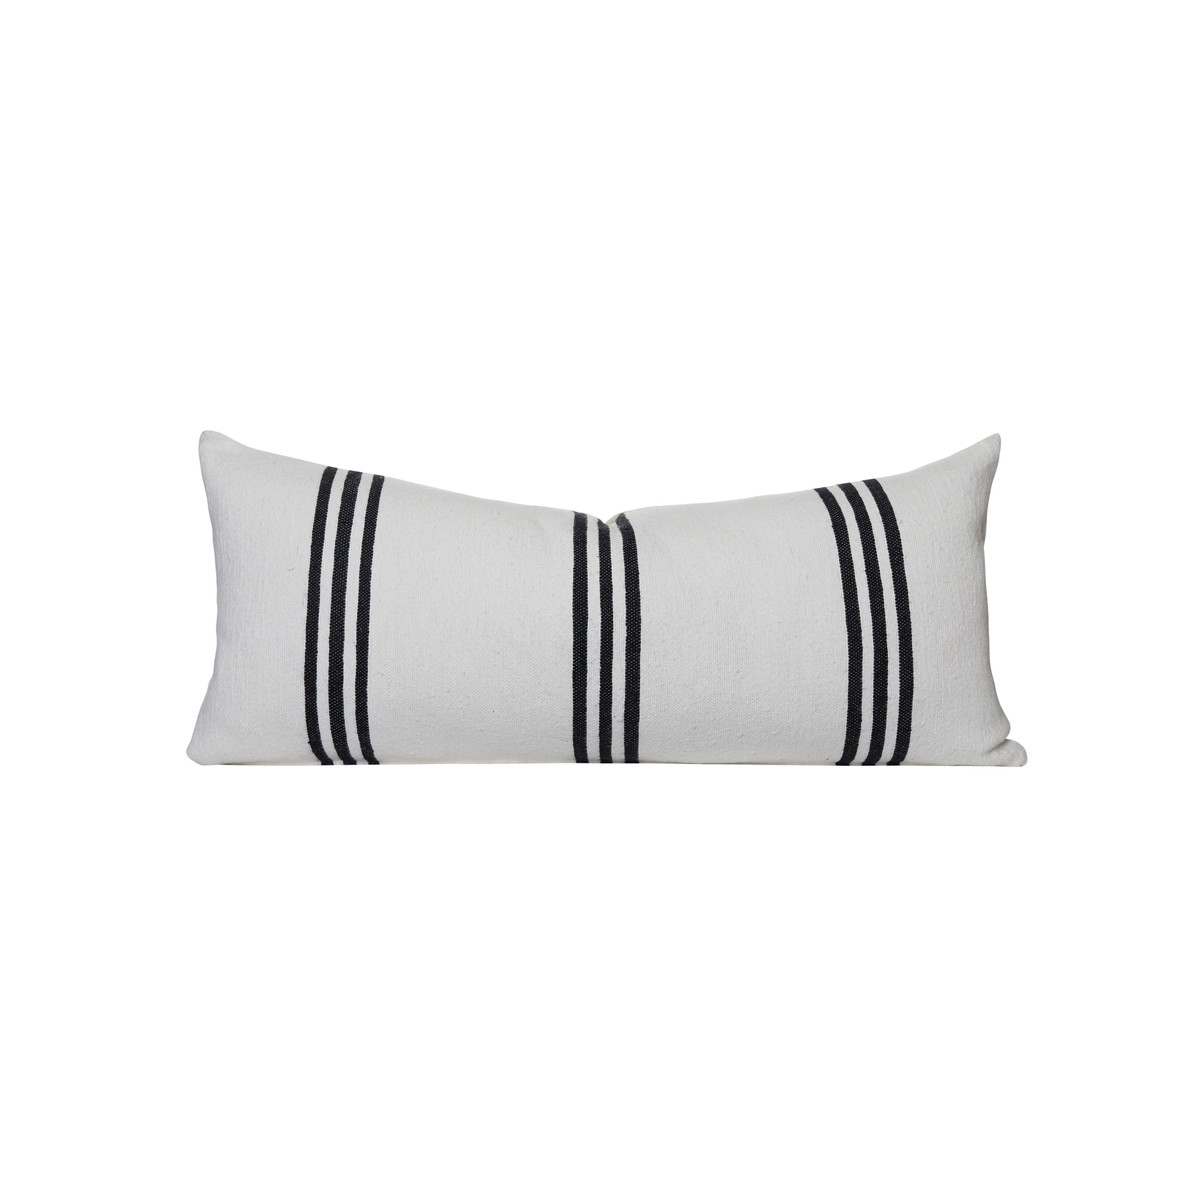 Three Stripe White with Black Stripe Decorative Lumbar Bed Pillow - Front